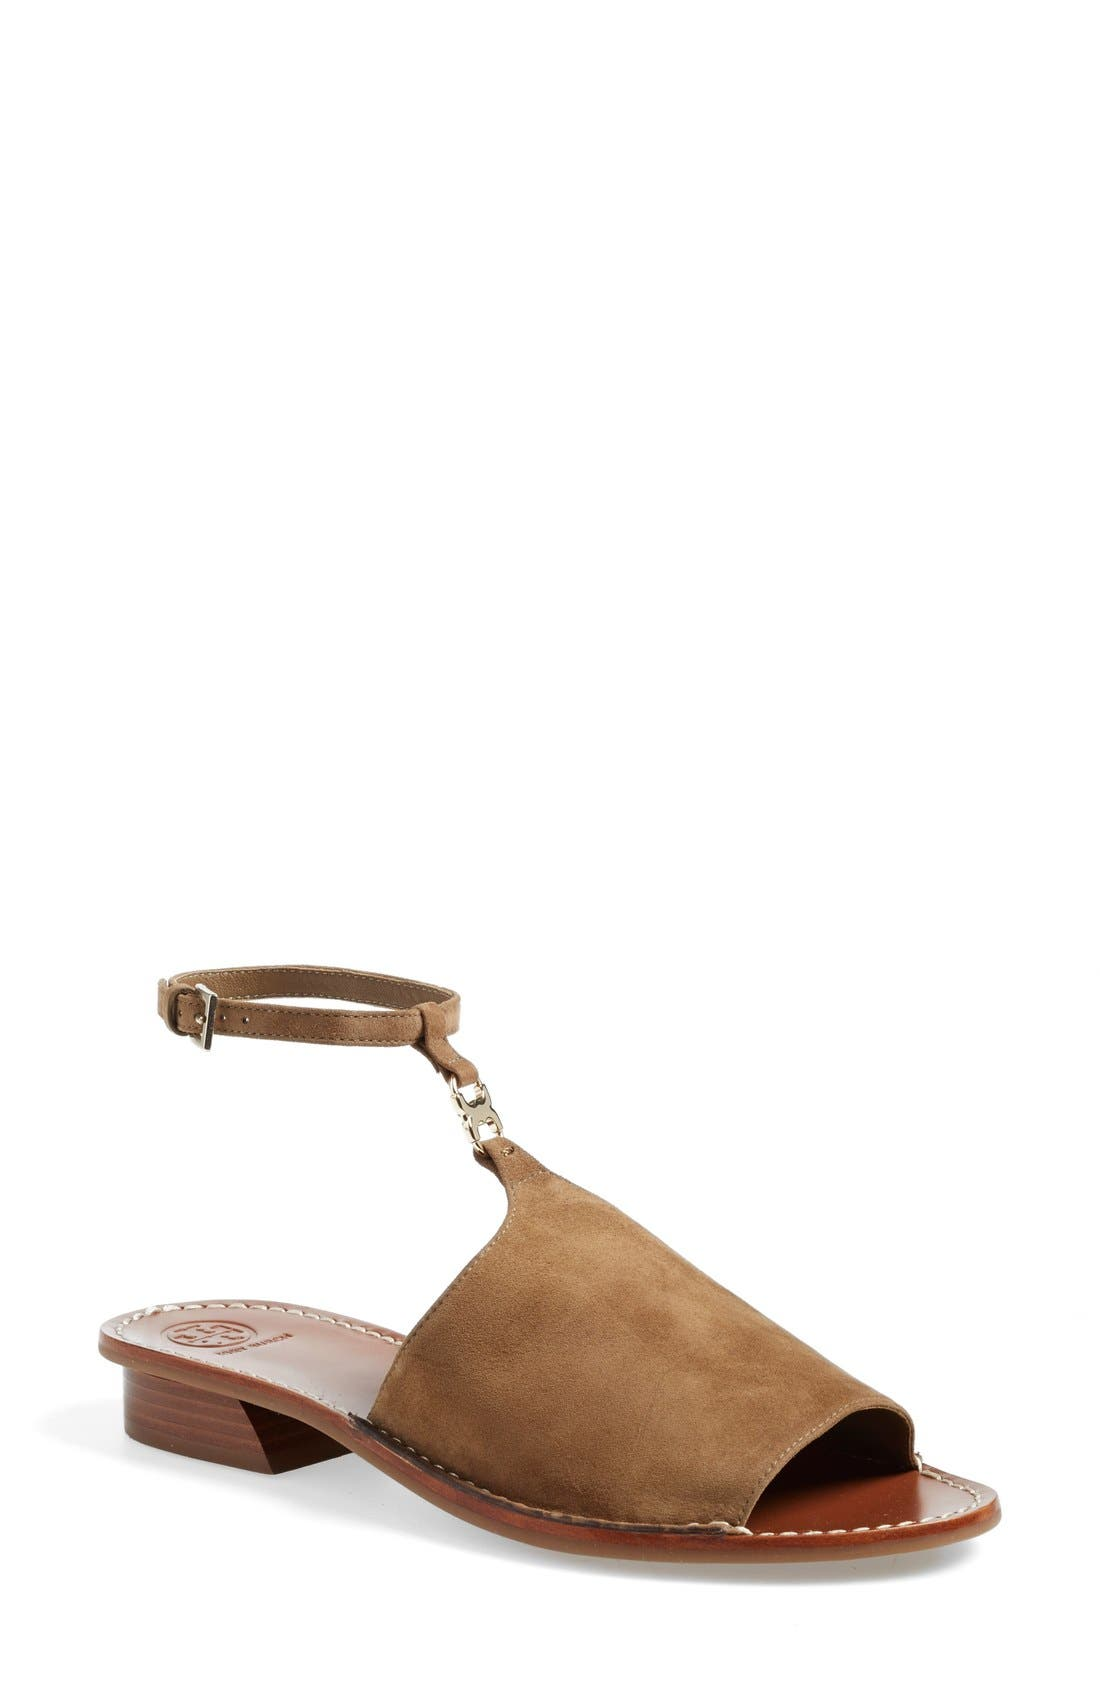 Alternate Image 1 Selected - Tory Burch 'Gemini Link' Ankle Strap Sandal (Women)